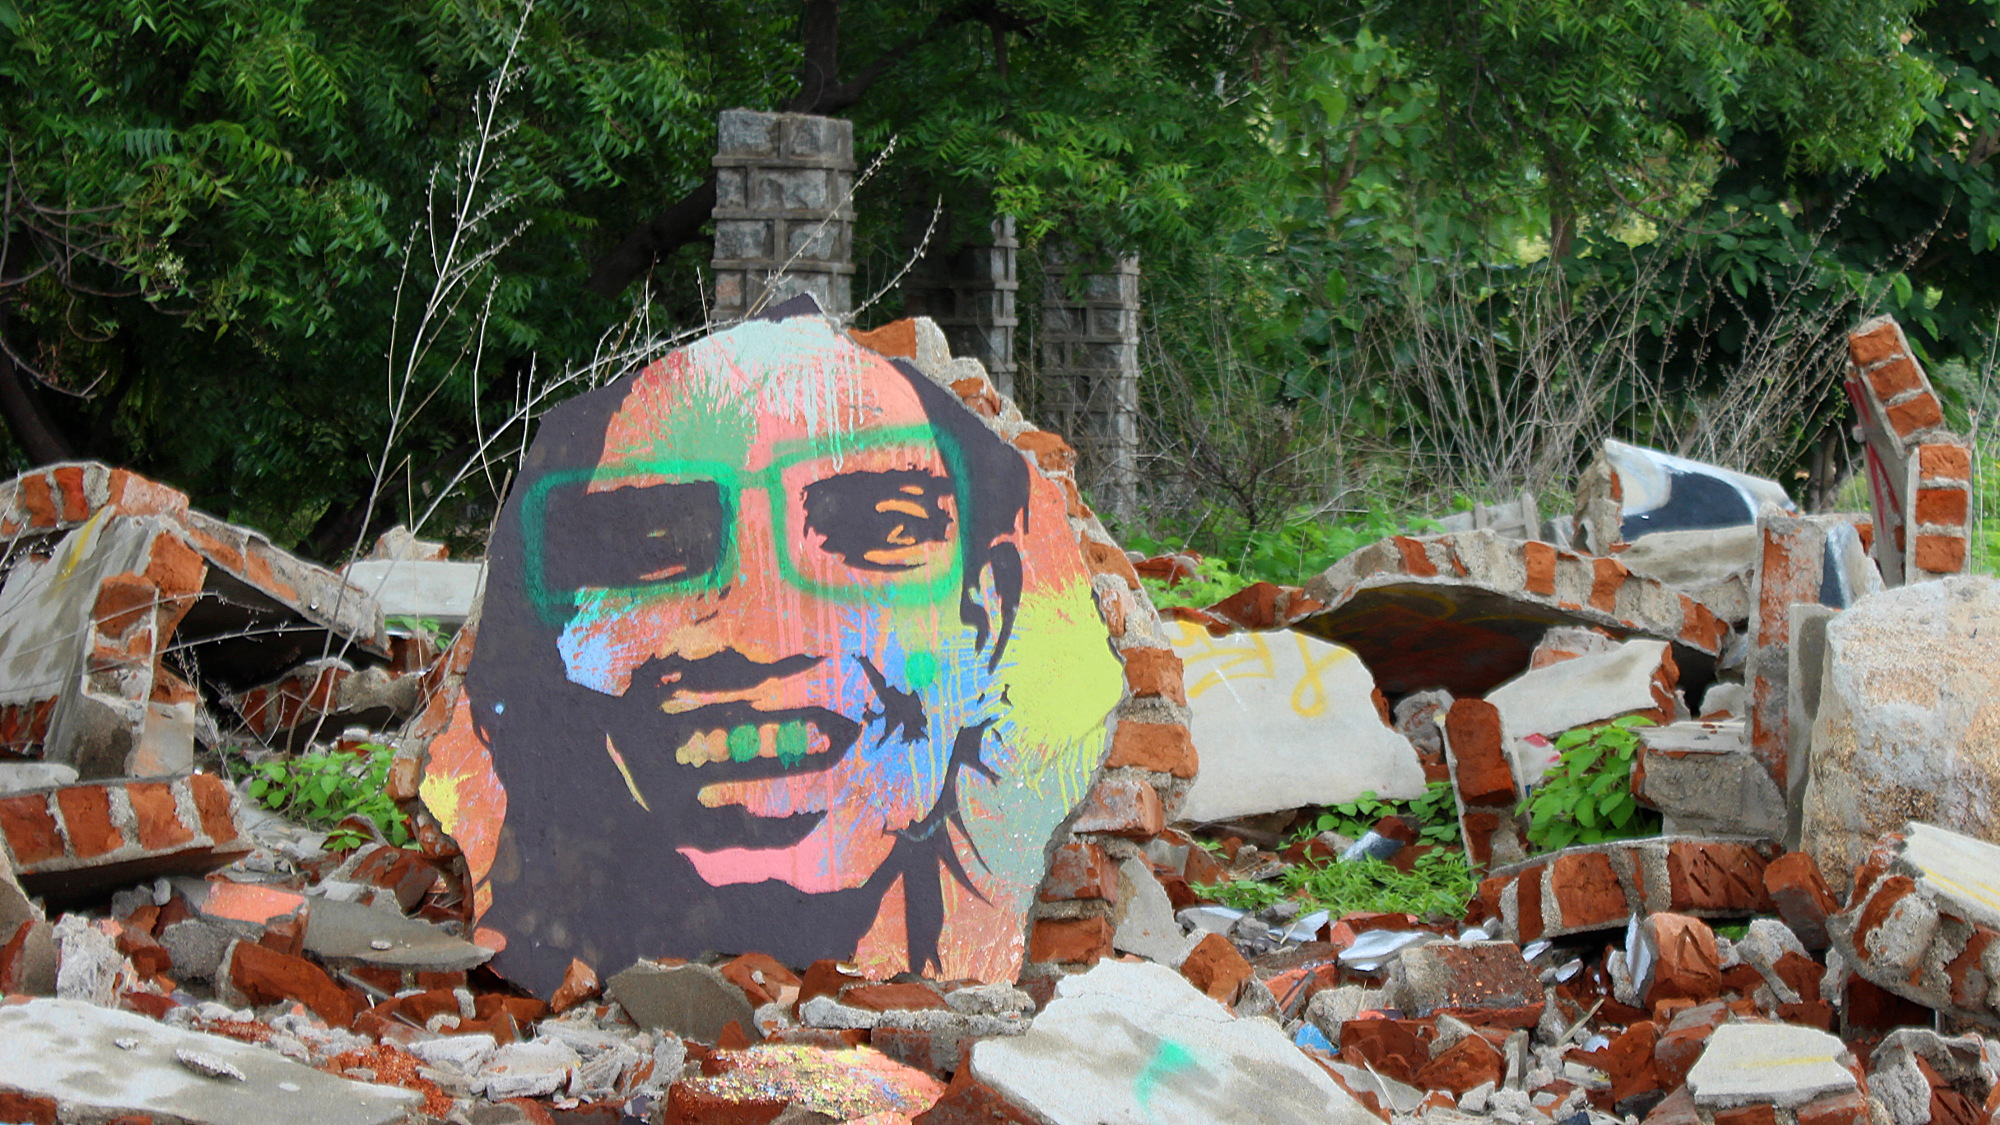 A colorful graffiti of a smiling man on a piece of concrete in Virupapur Gaddi.